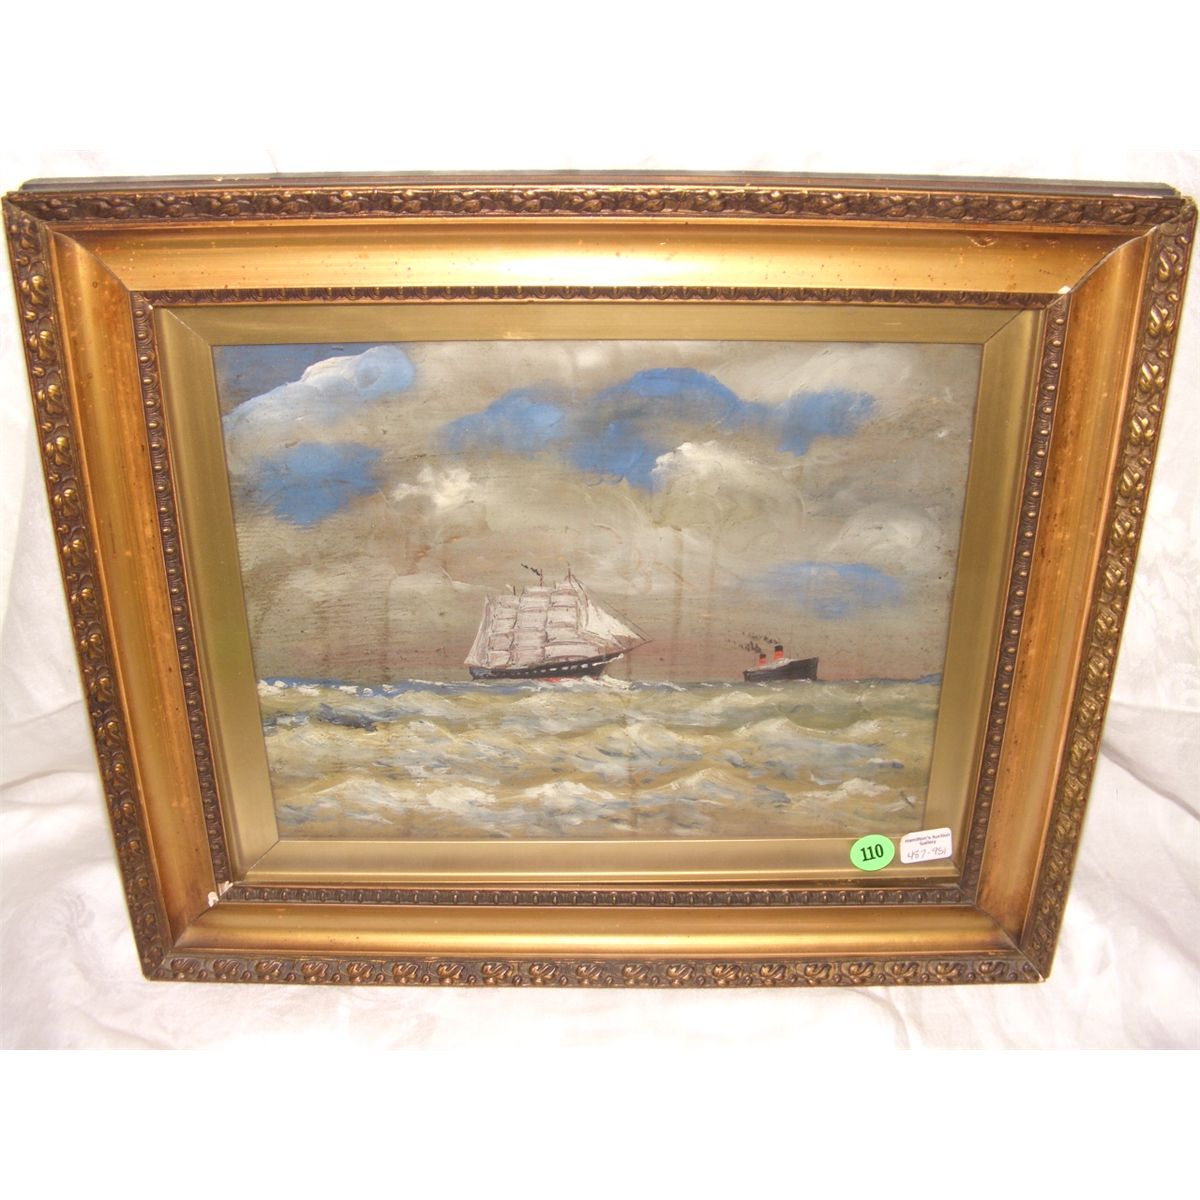 antique painting of schooner and steam ship at sea info on frame 13 12 x 15 34 art 8 12 x 11